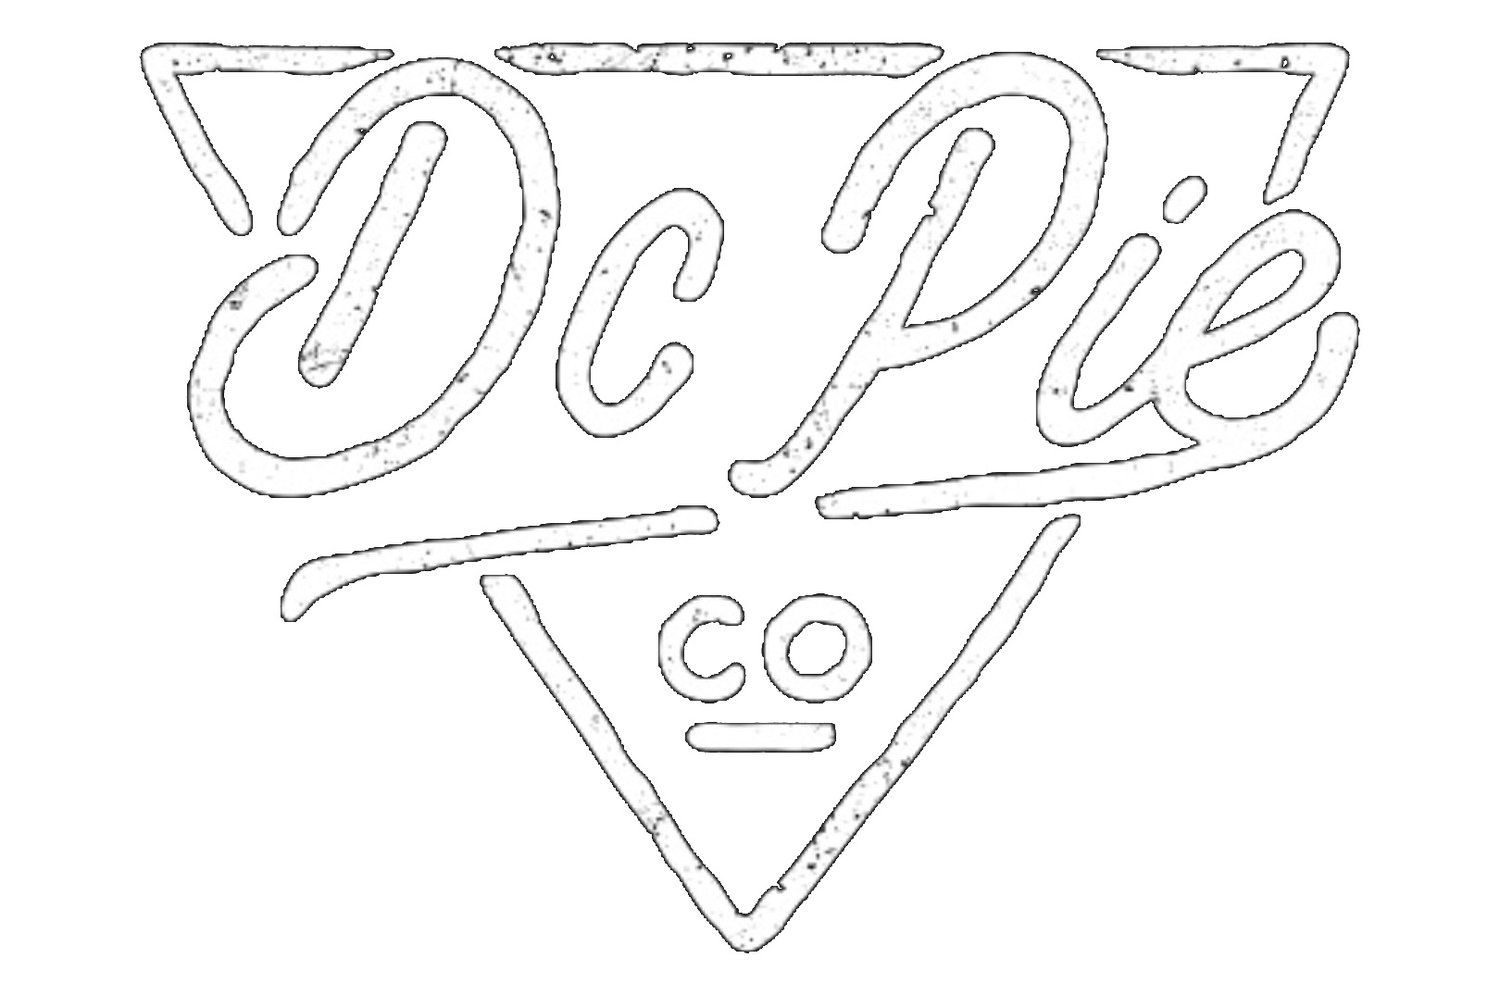 DC PIE CO